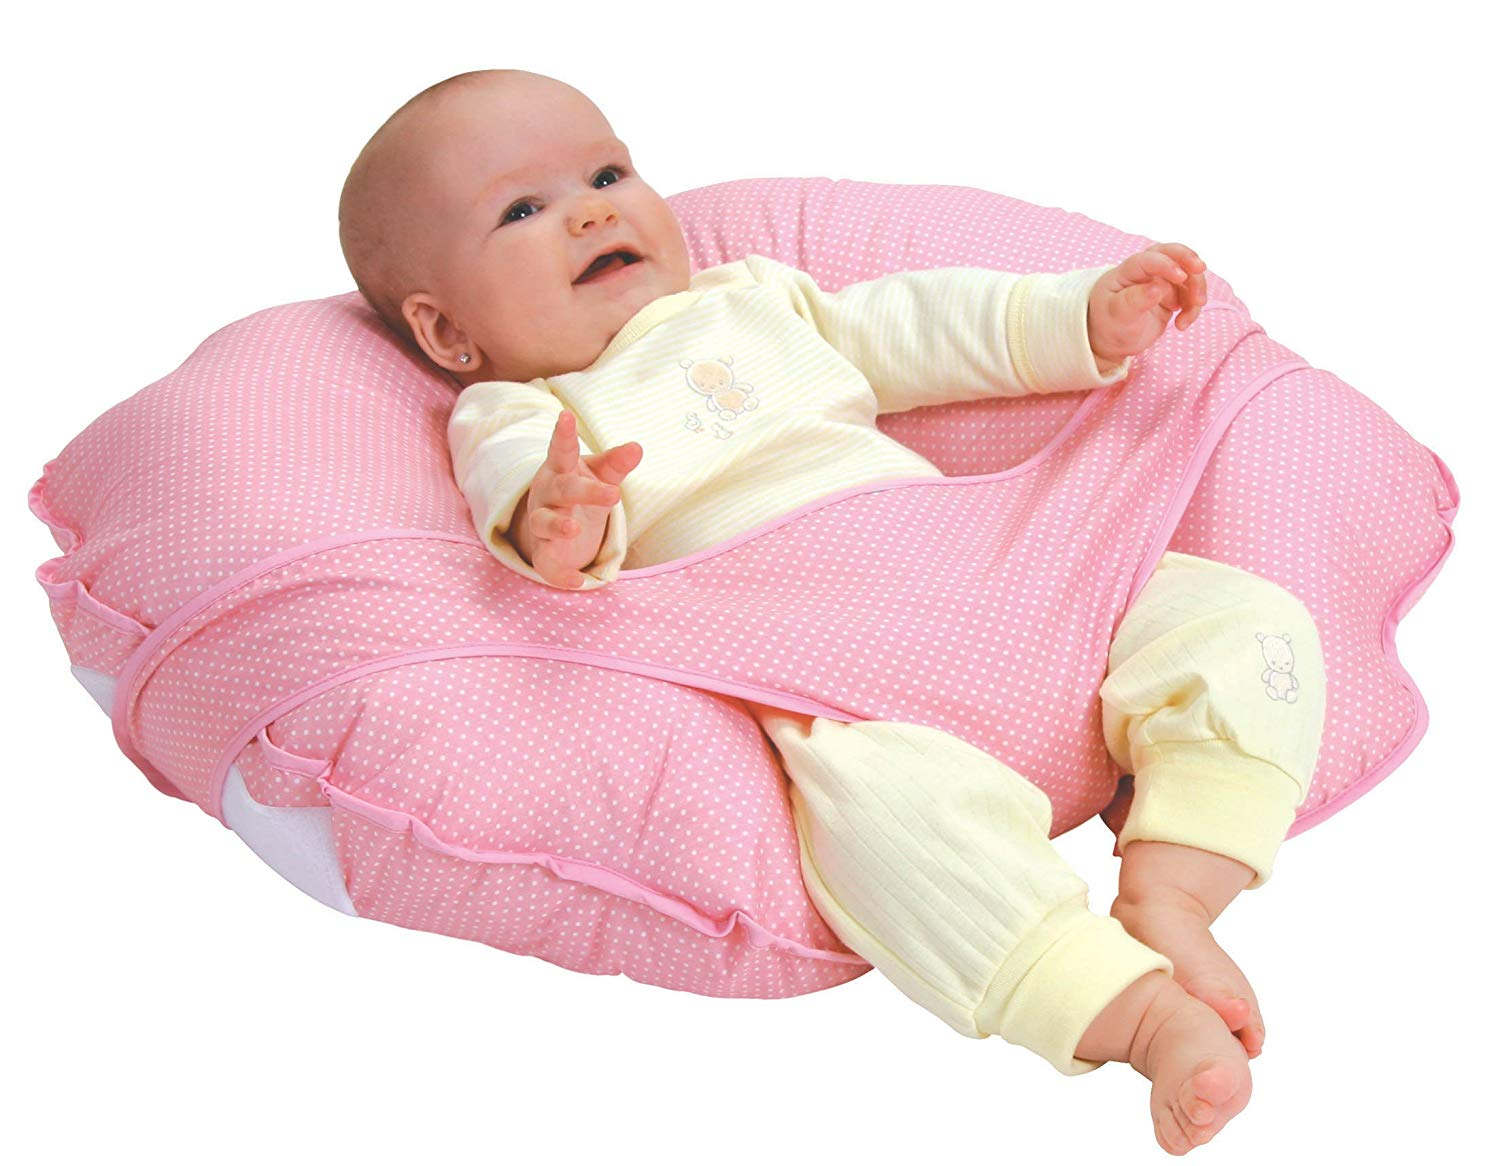 Leachco Best Nursing Pillow Review by www.snoremagazine.com